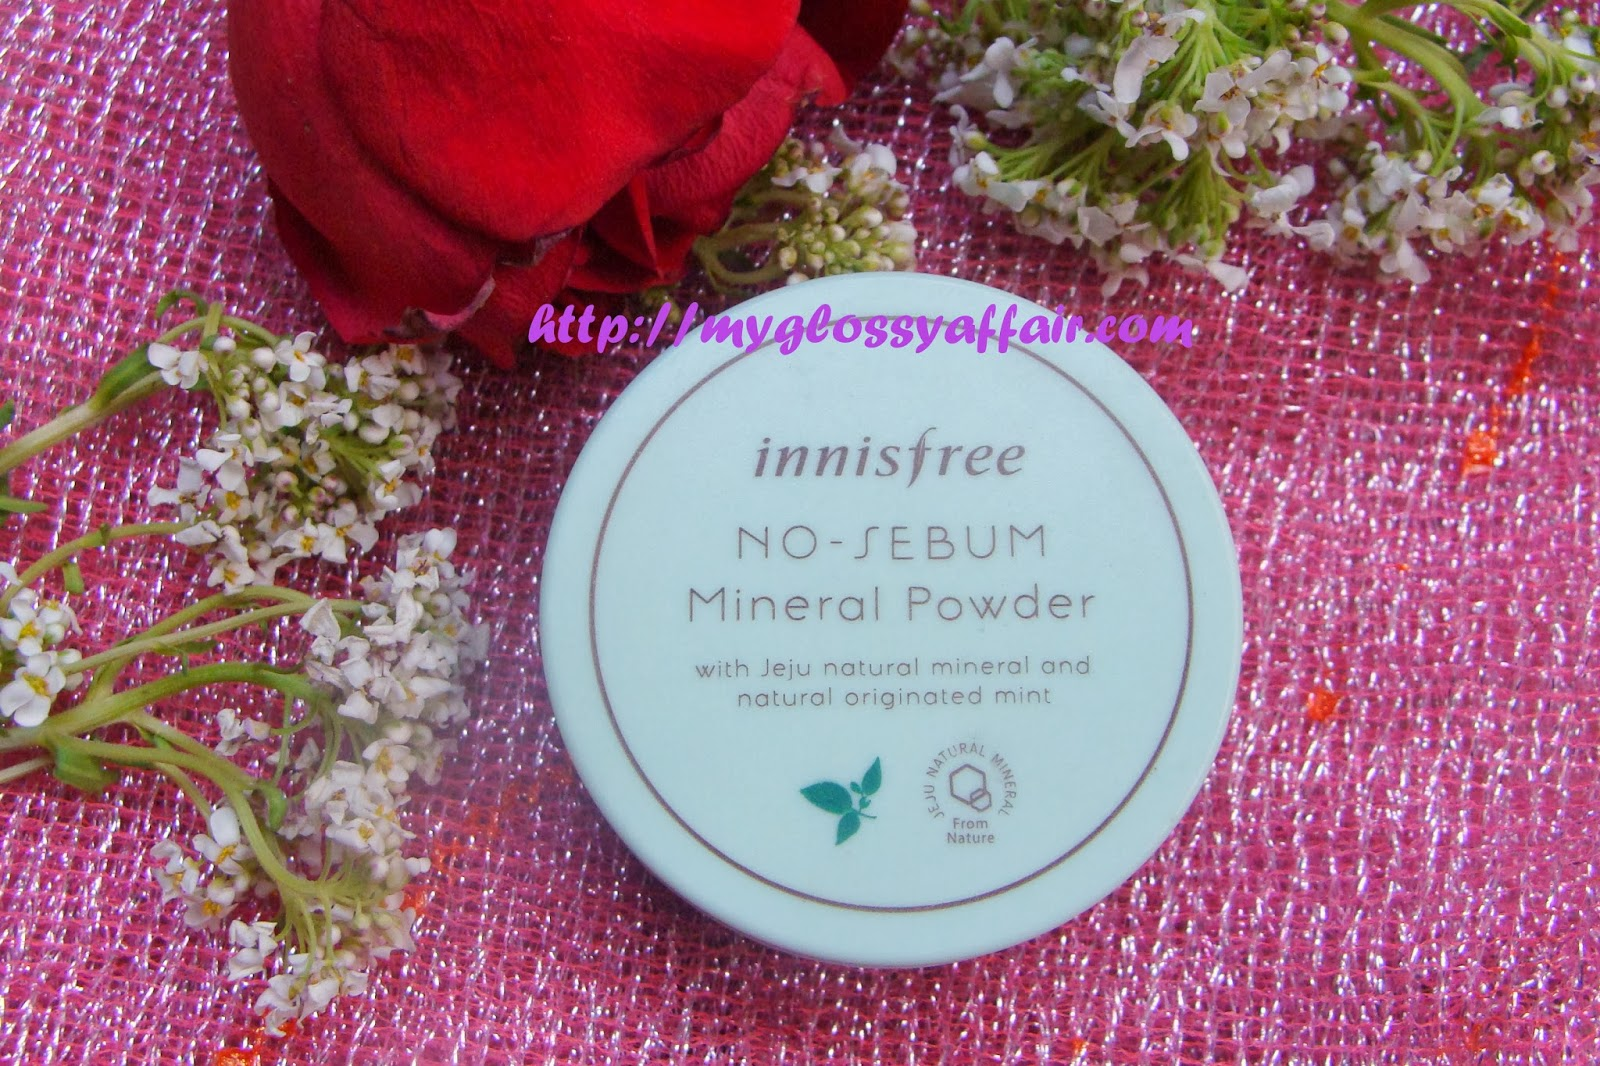 Innisfree No - Sebum Mineral Powder Review